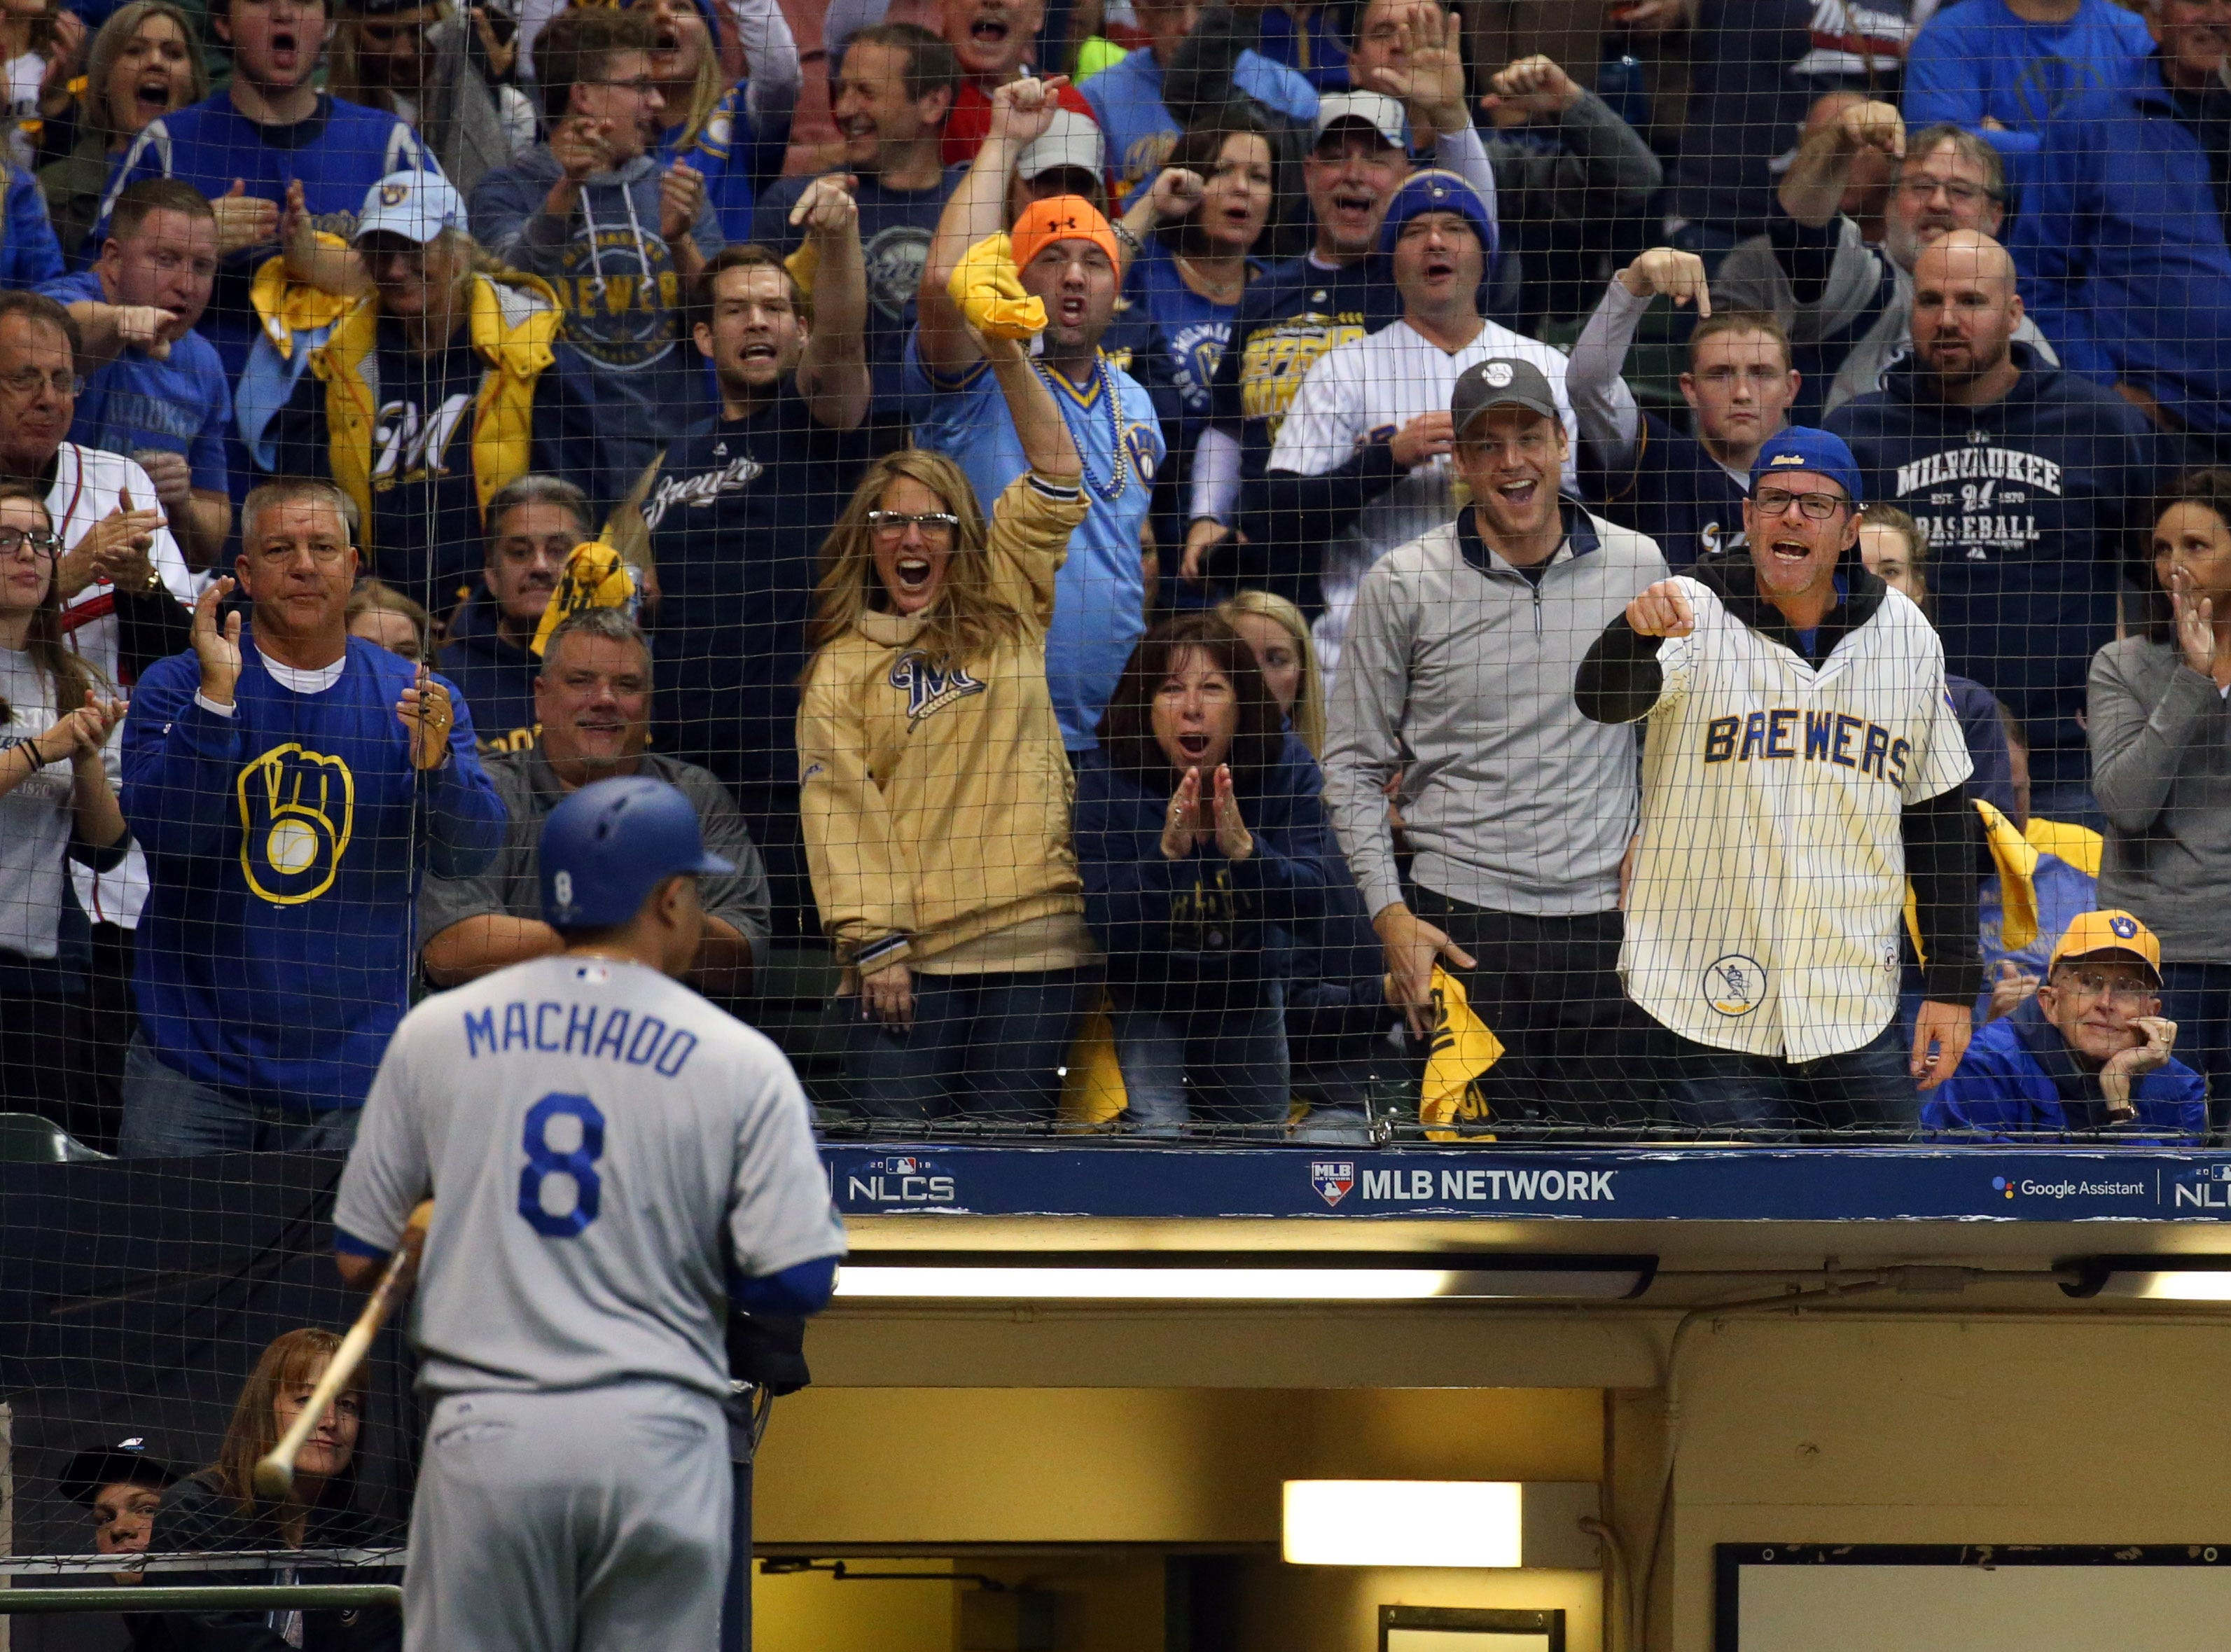 NLCS Game 6: Brewers fans taunt Manny Machado after he struck out in the first inning